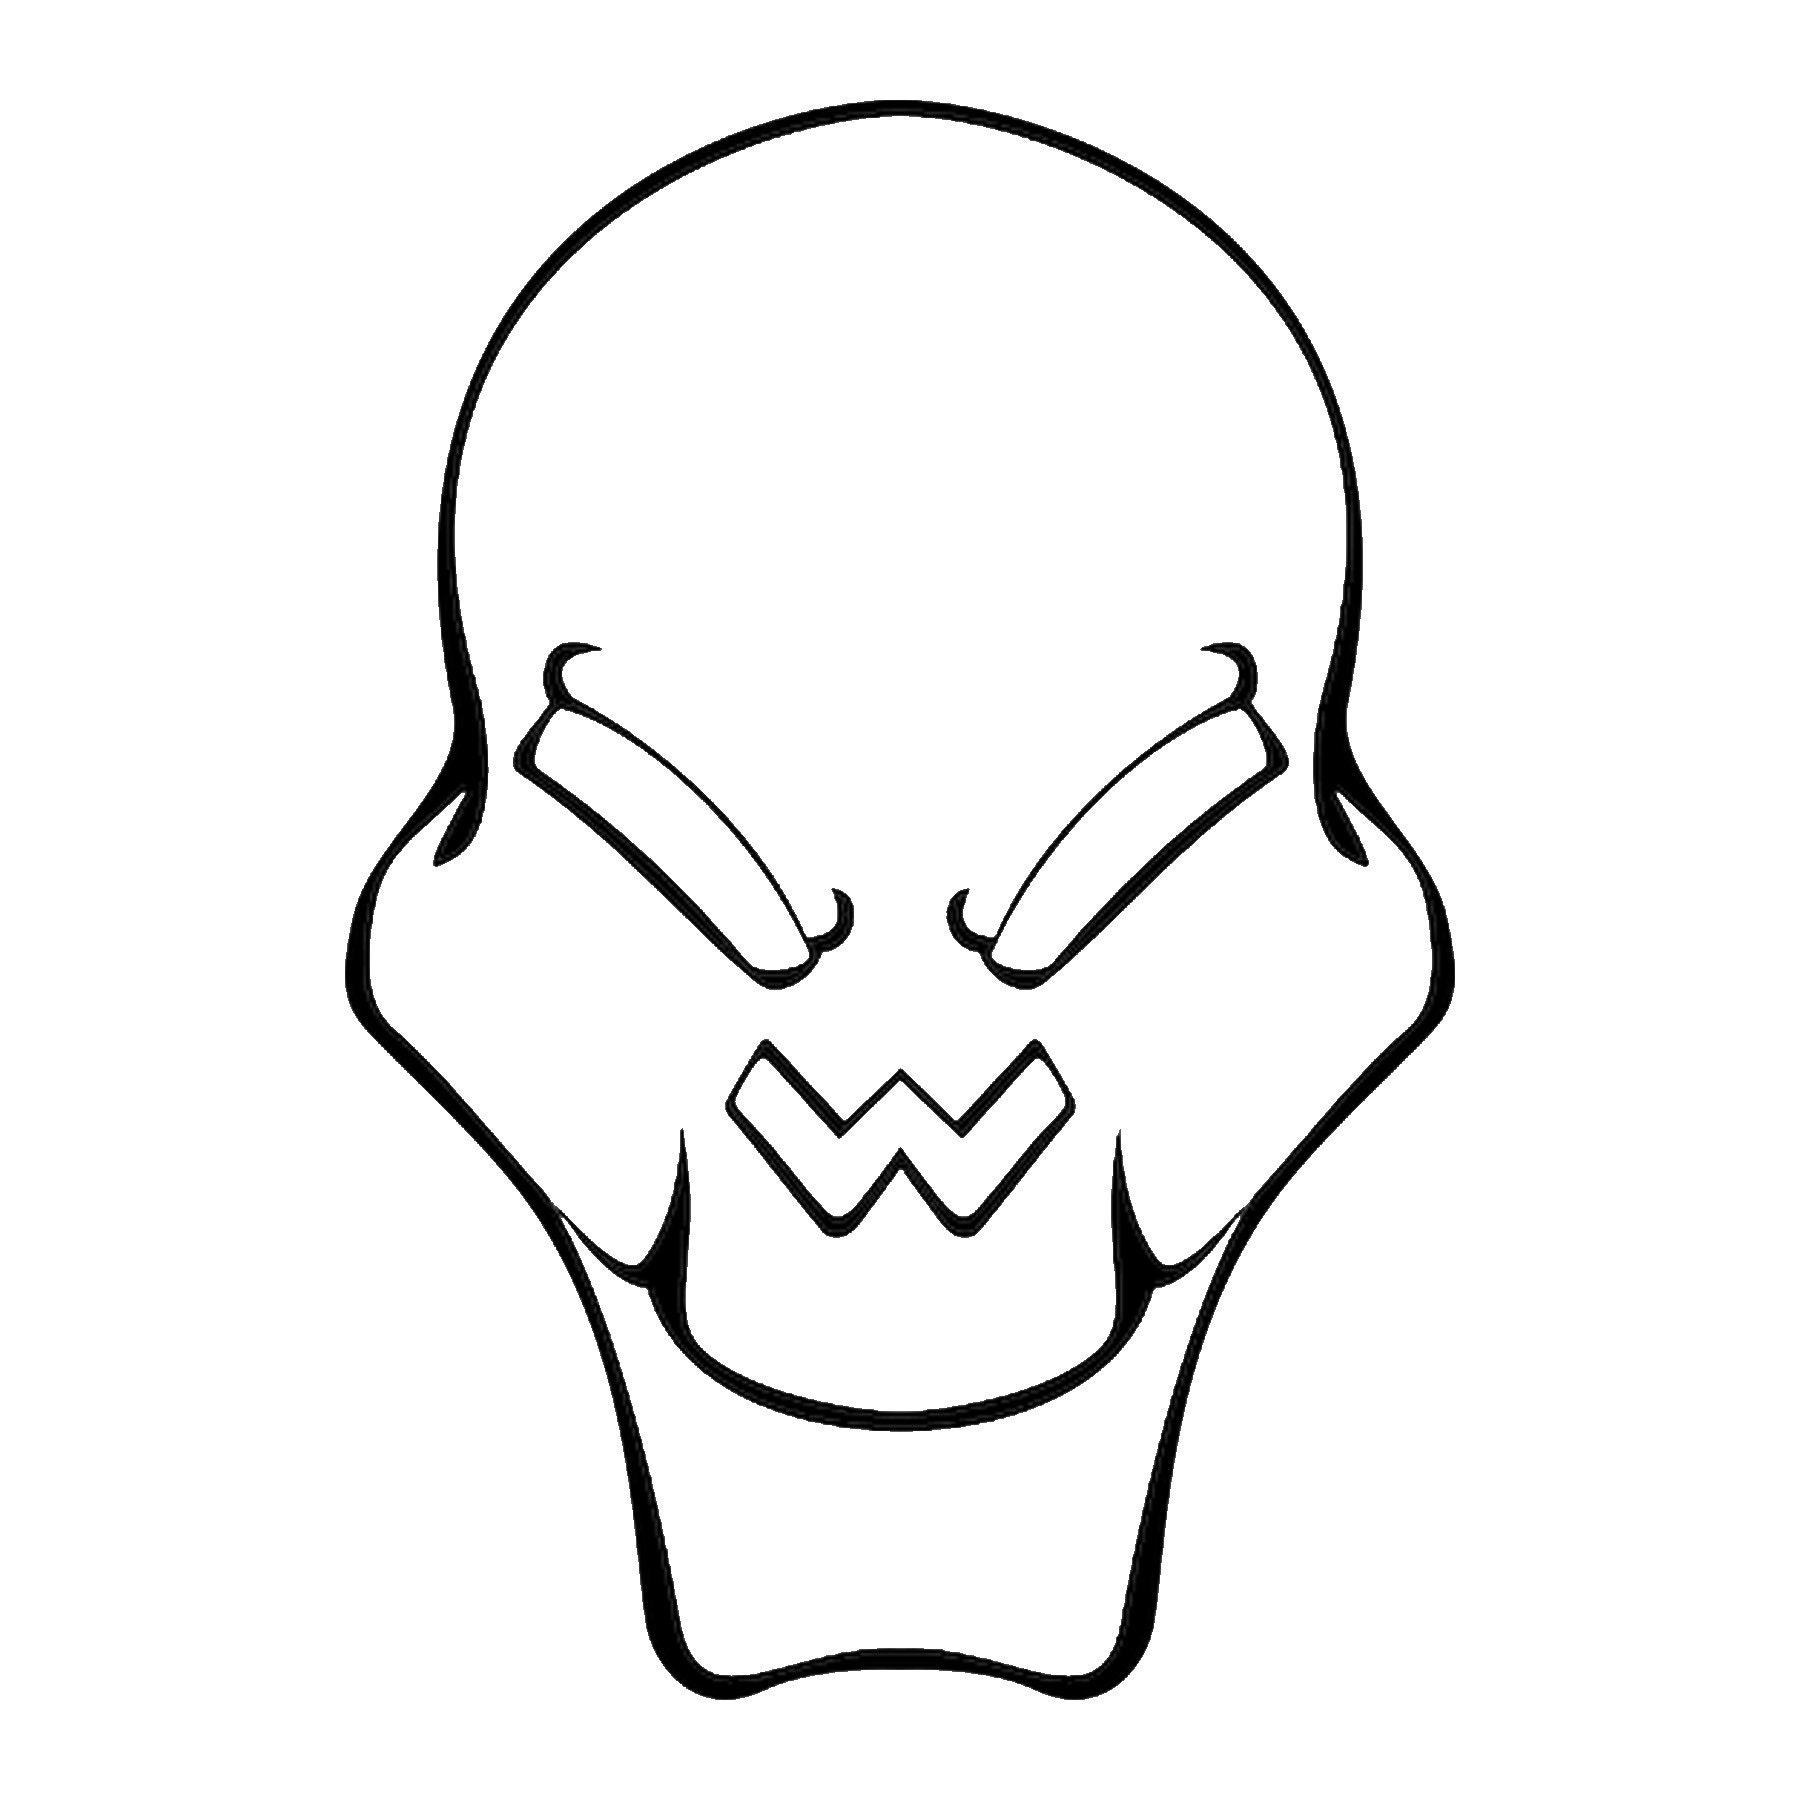 CAD$6.99 - Alien Vinyl Decal - various sizes and colors - colours